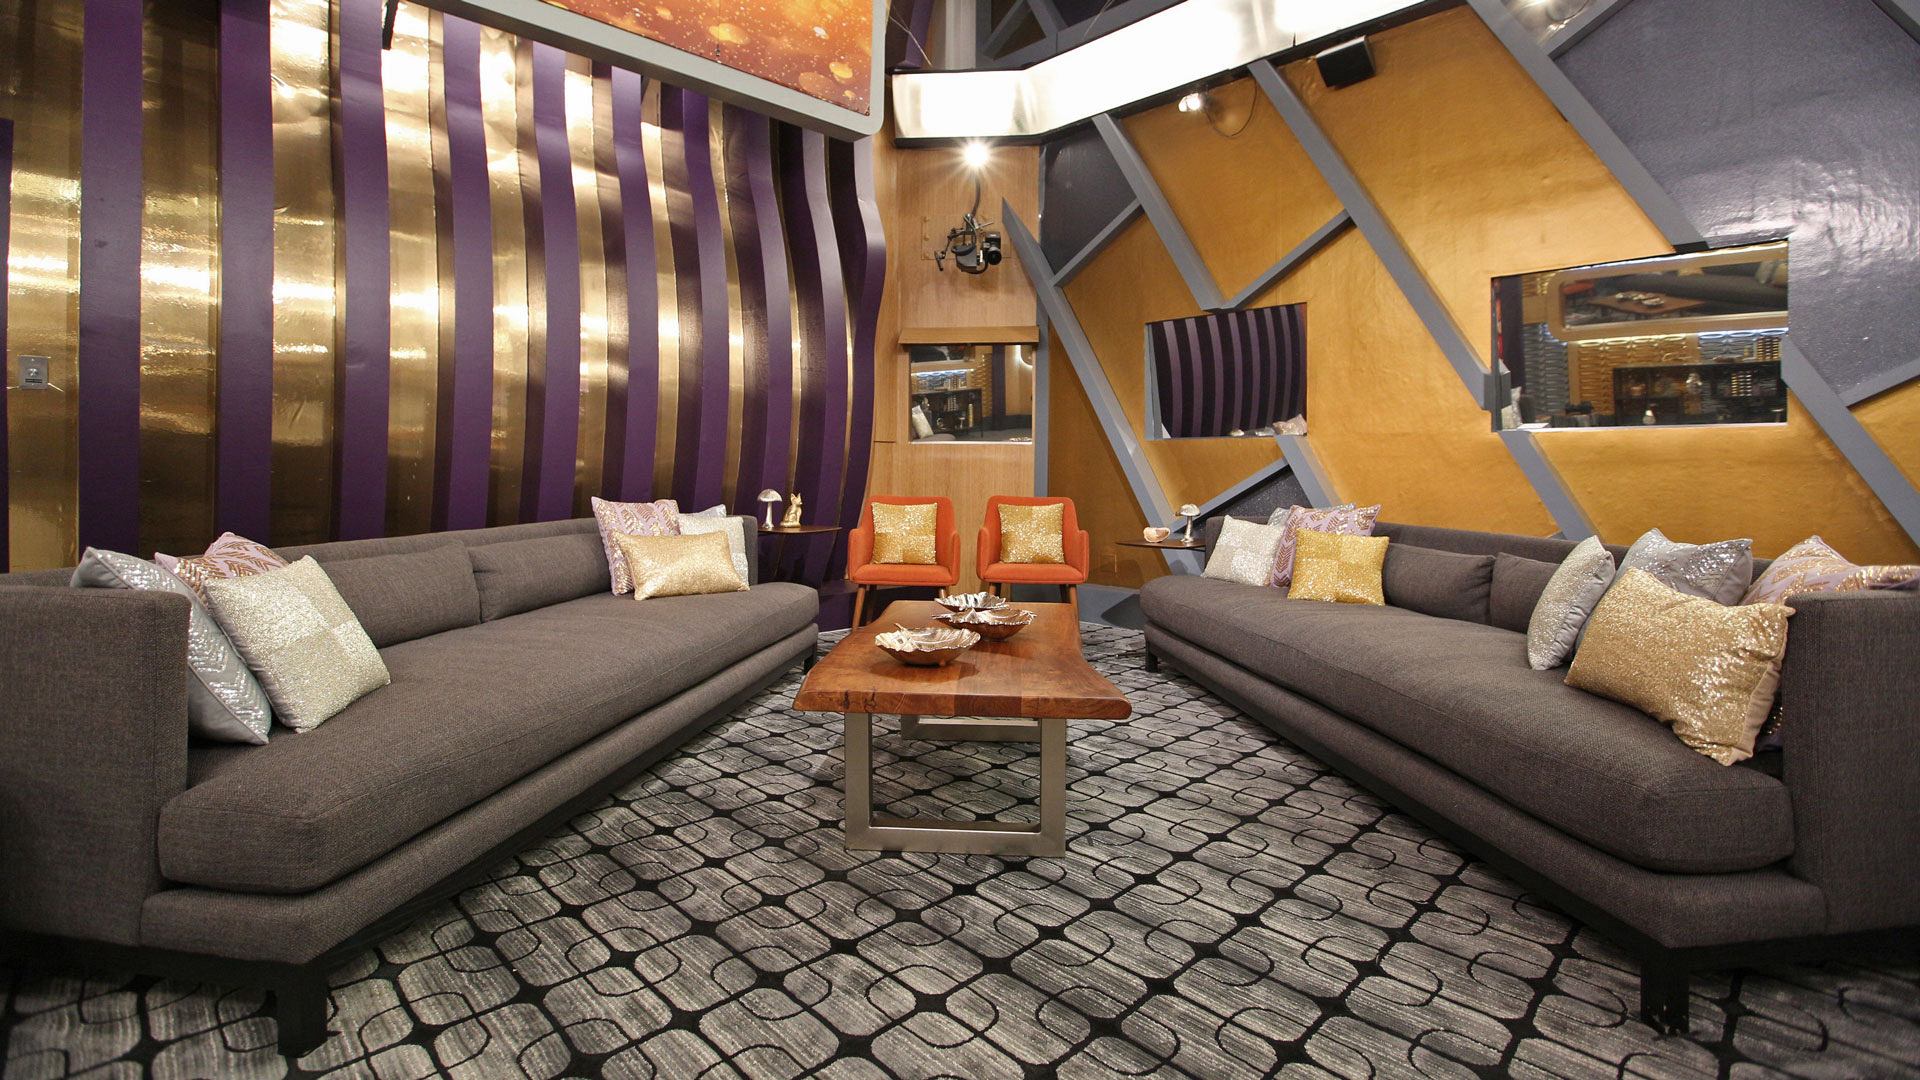 Big Brother: Over the Top Houseguests will gather here and vote for which HG will leave the house each week.